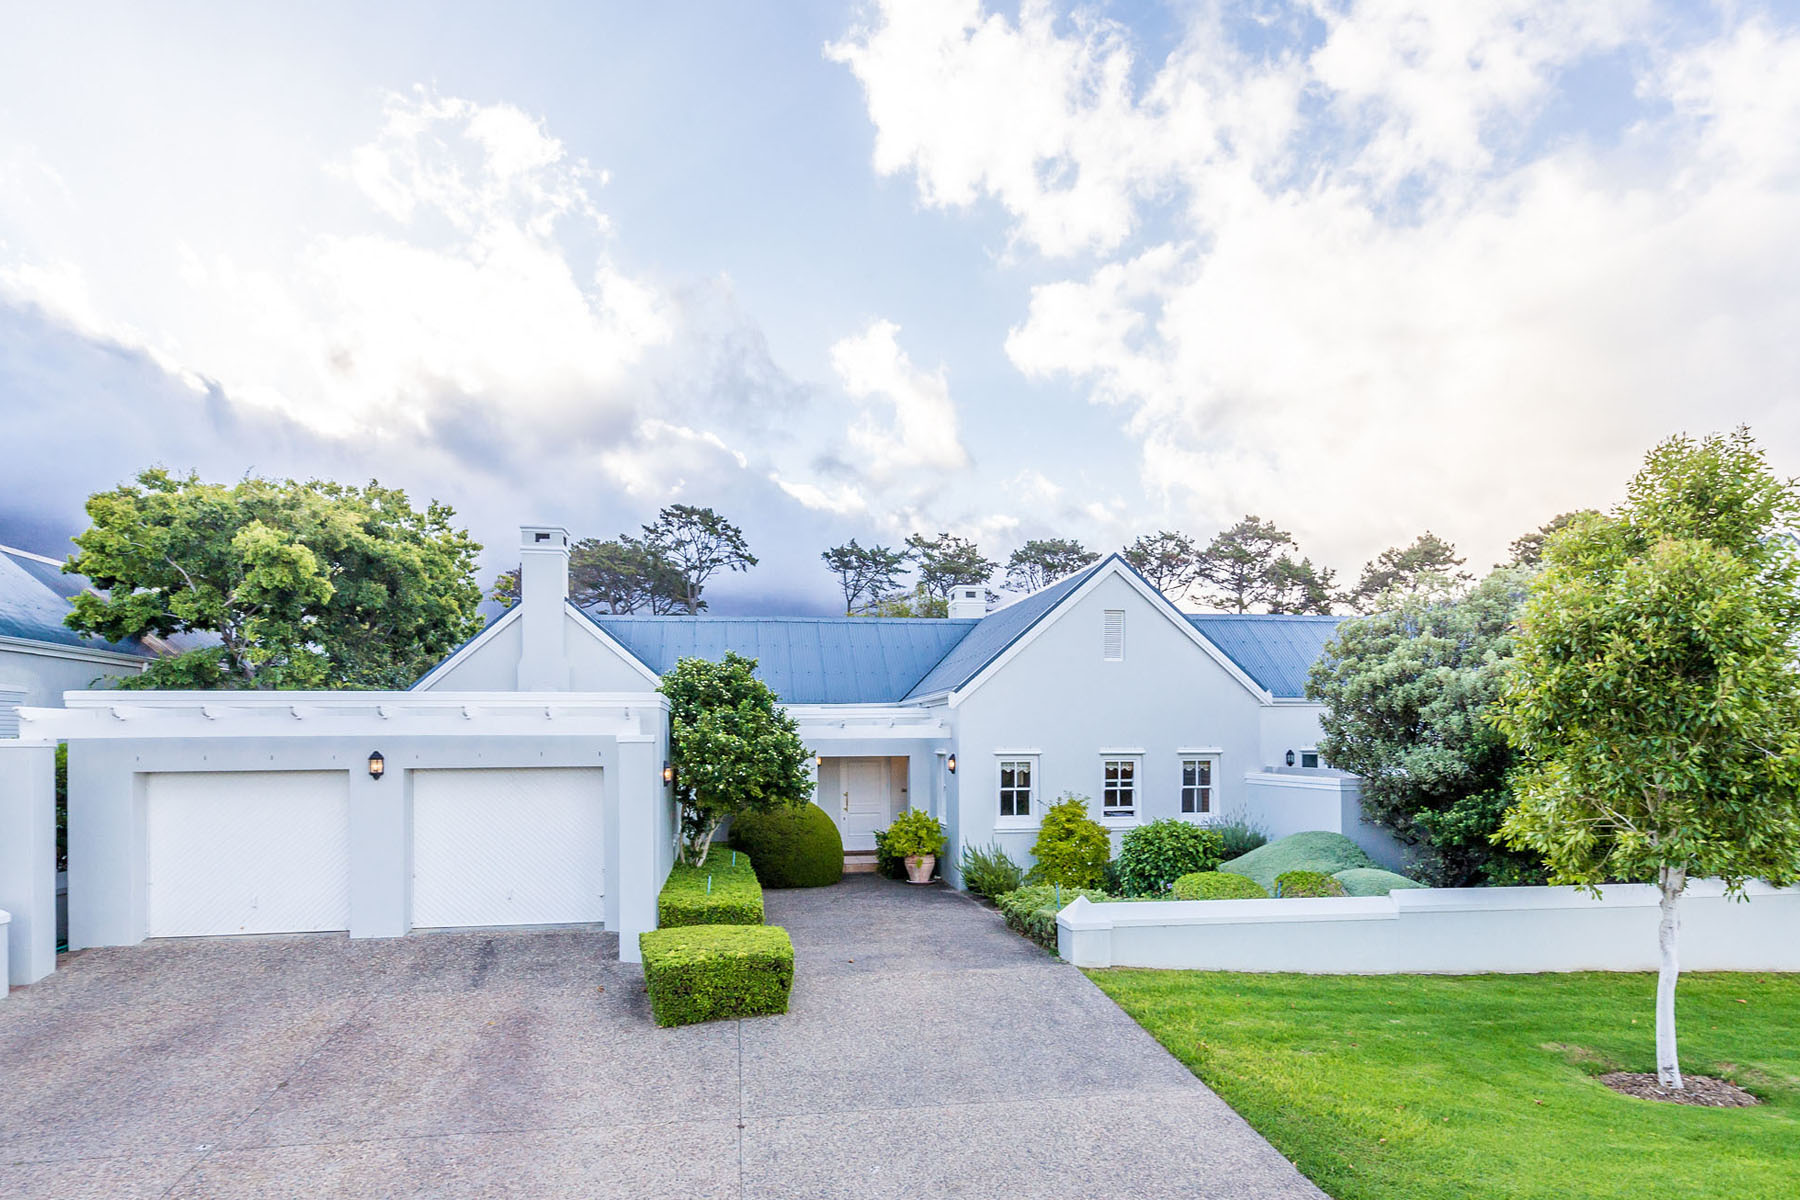 Single Family Home for Sale at Steenberg Golf Estate Tokai, Western Cape, 7945 South Africa